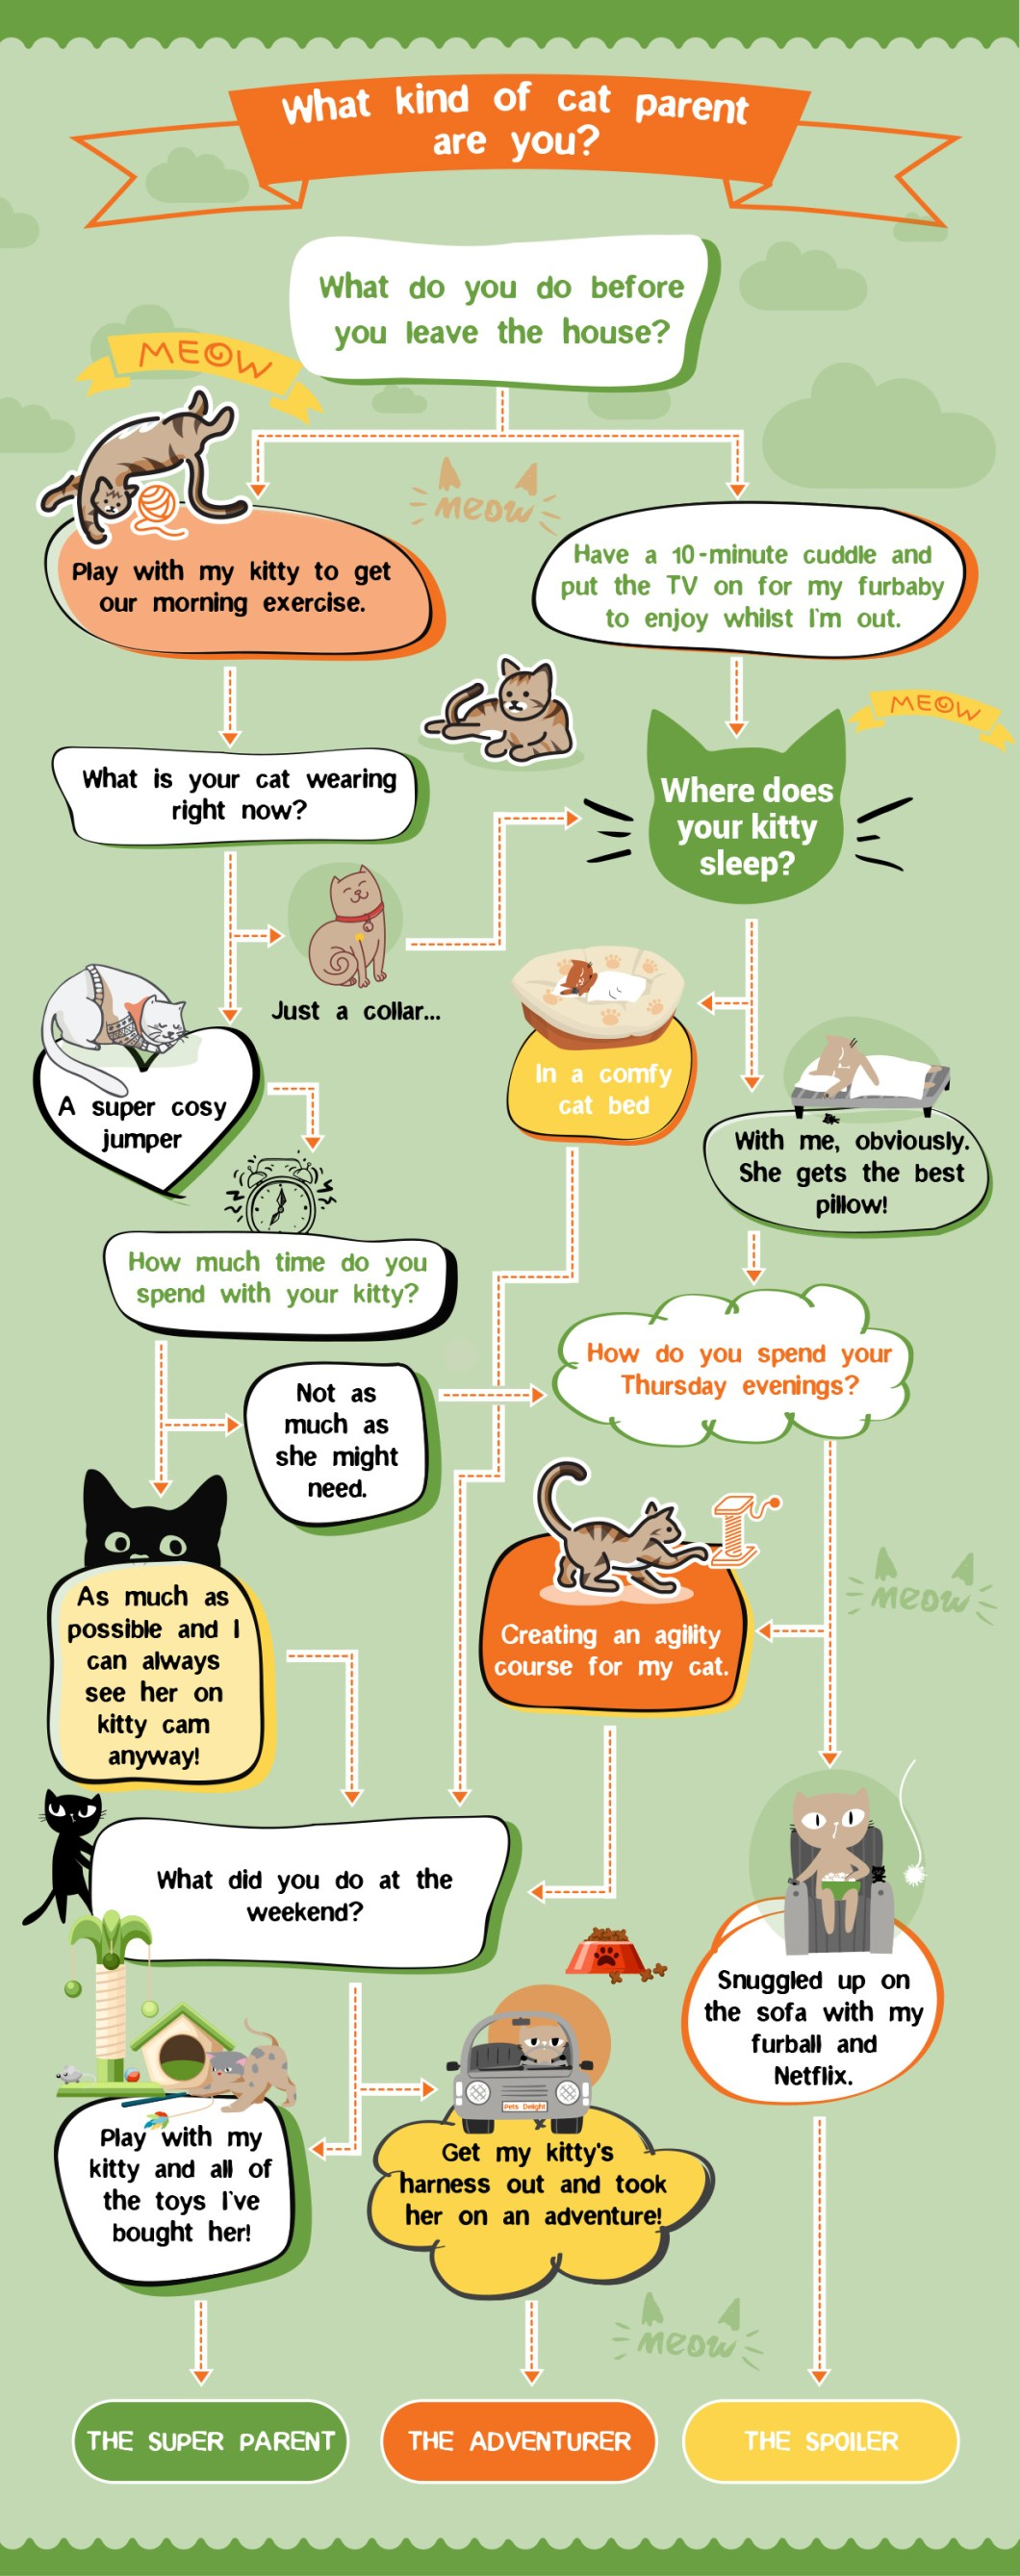 What Kind of Cat Parent are You? - Infographic